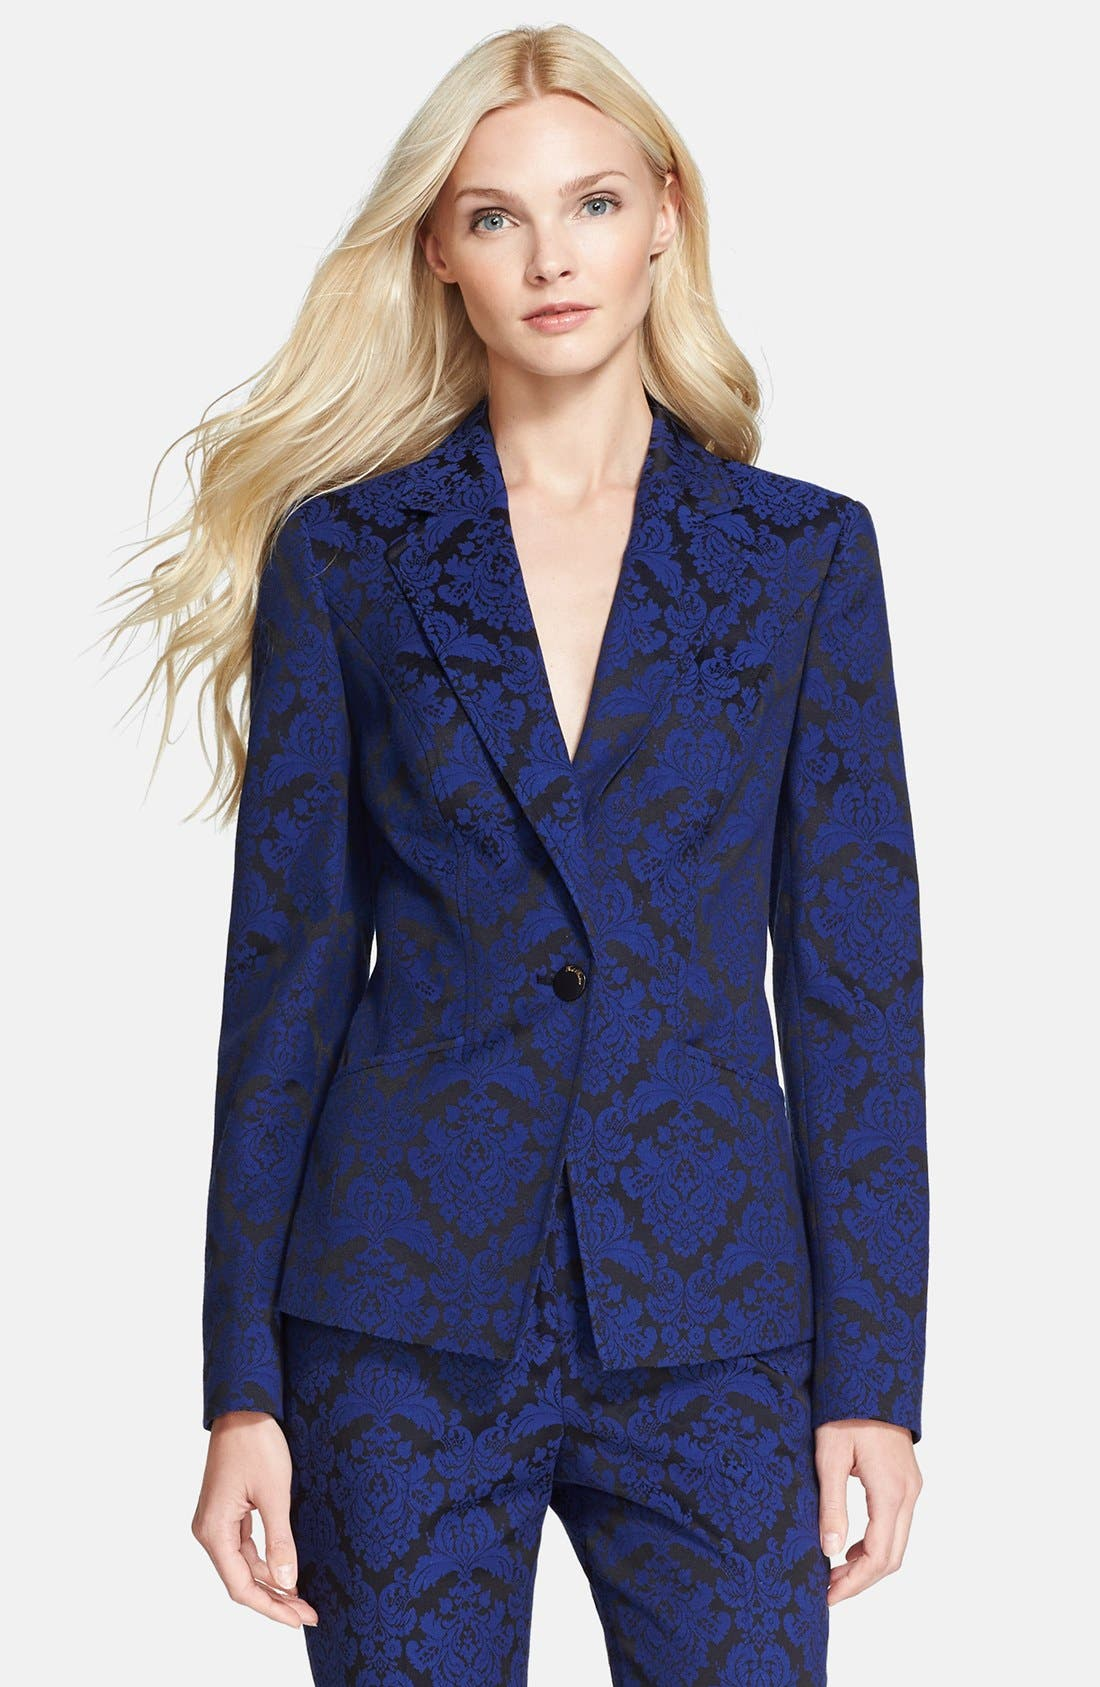 Alternate Image 1 Selected - Ted Baker London Jacquard Suit Jacket